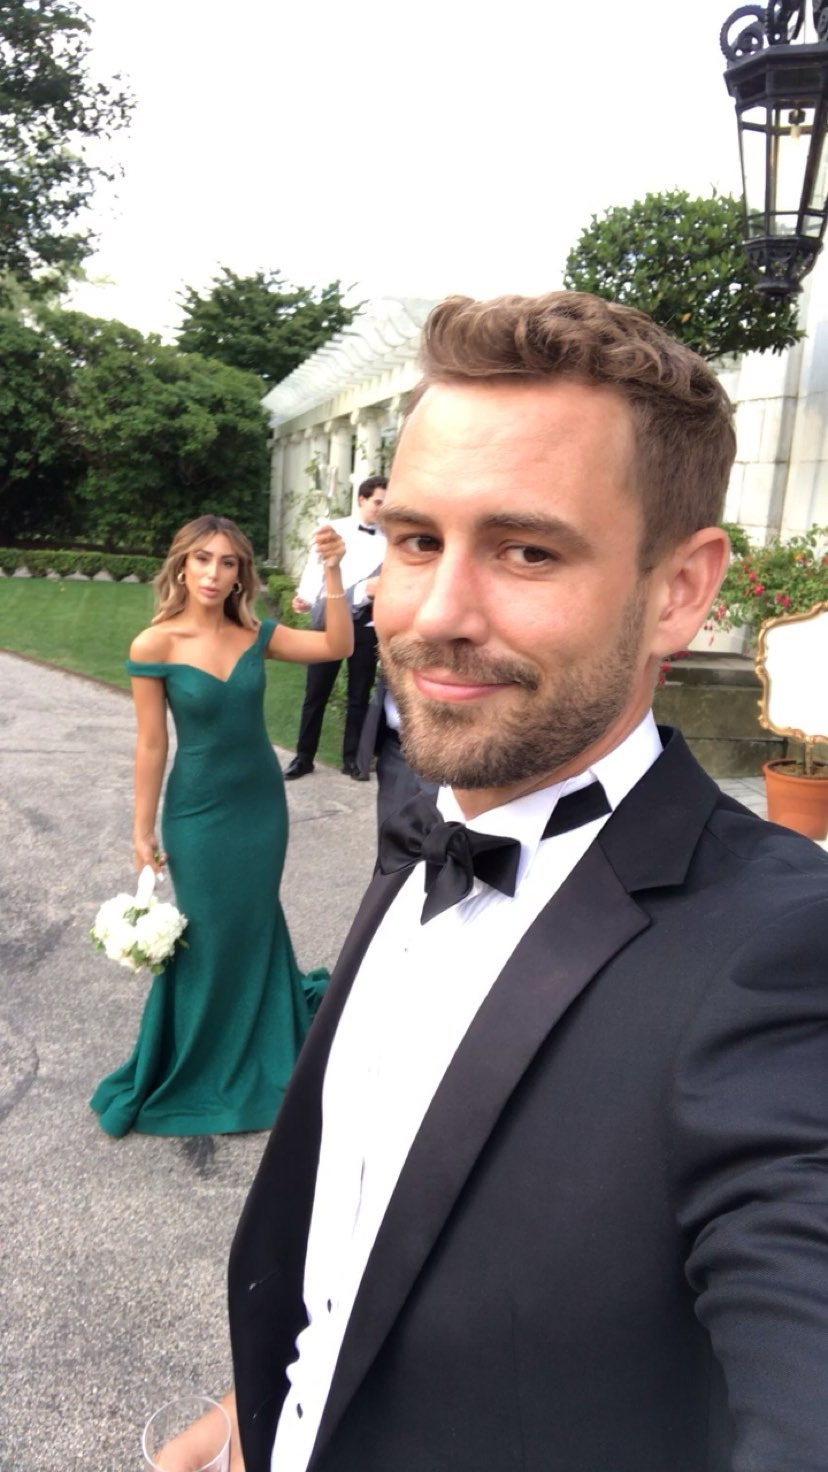 Nick Viall - Bachelor 21 - FAN Forum - Discussion #27 - Page 60 66624310